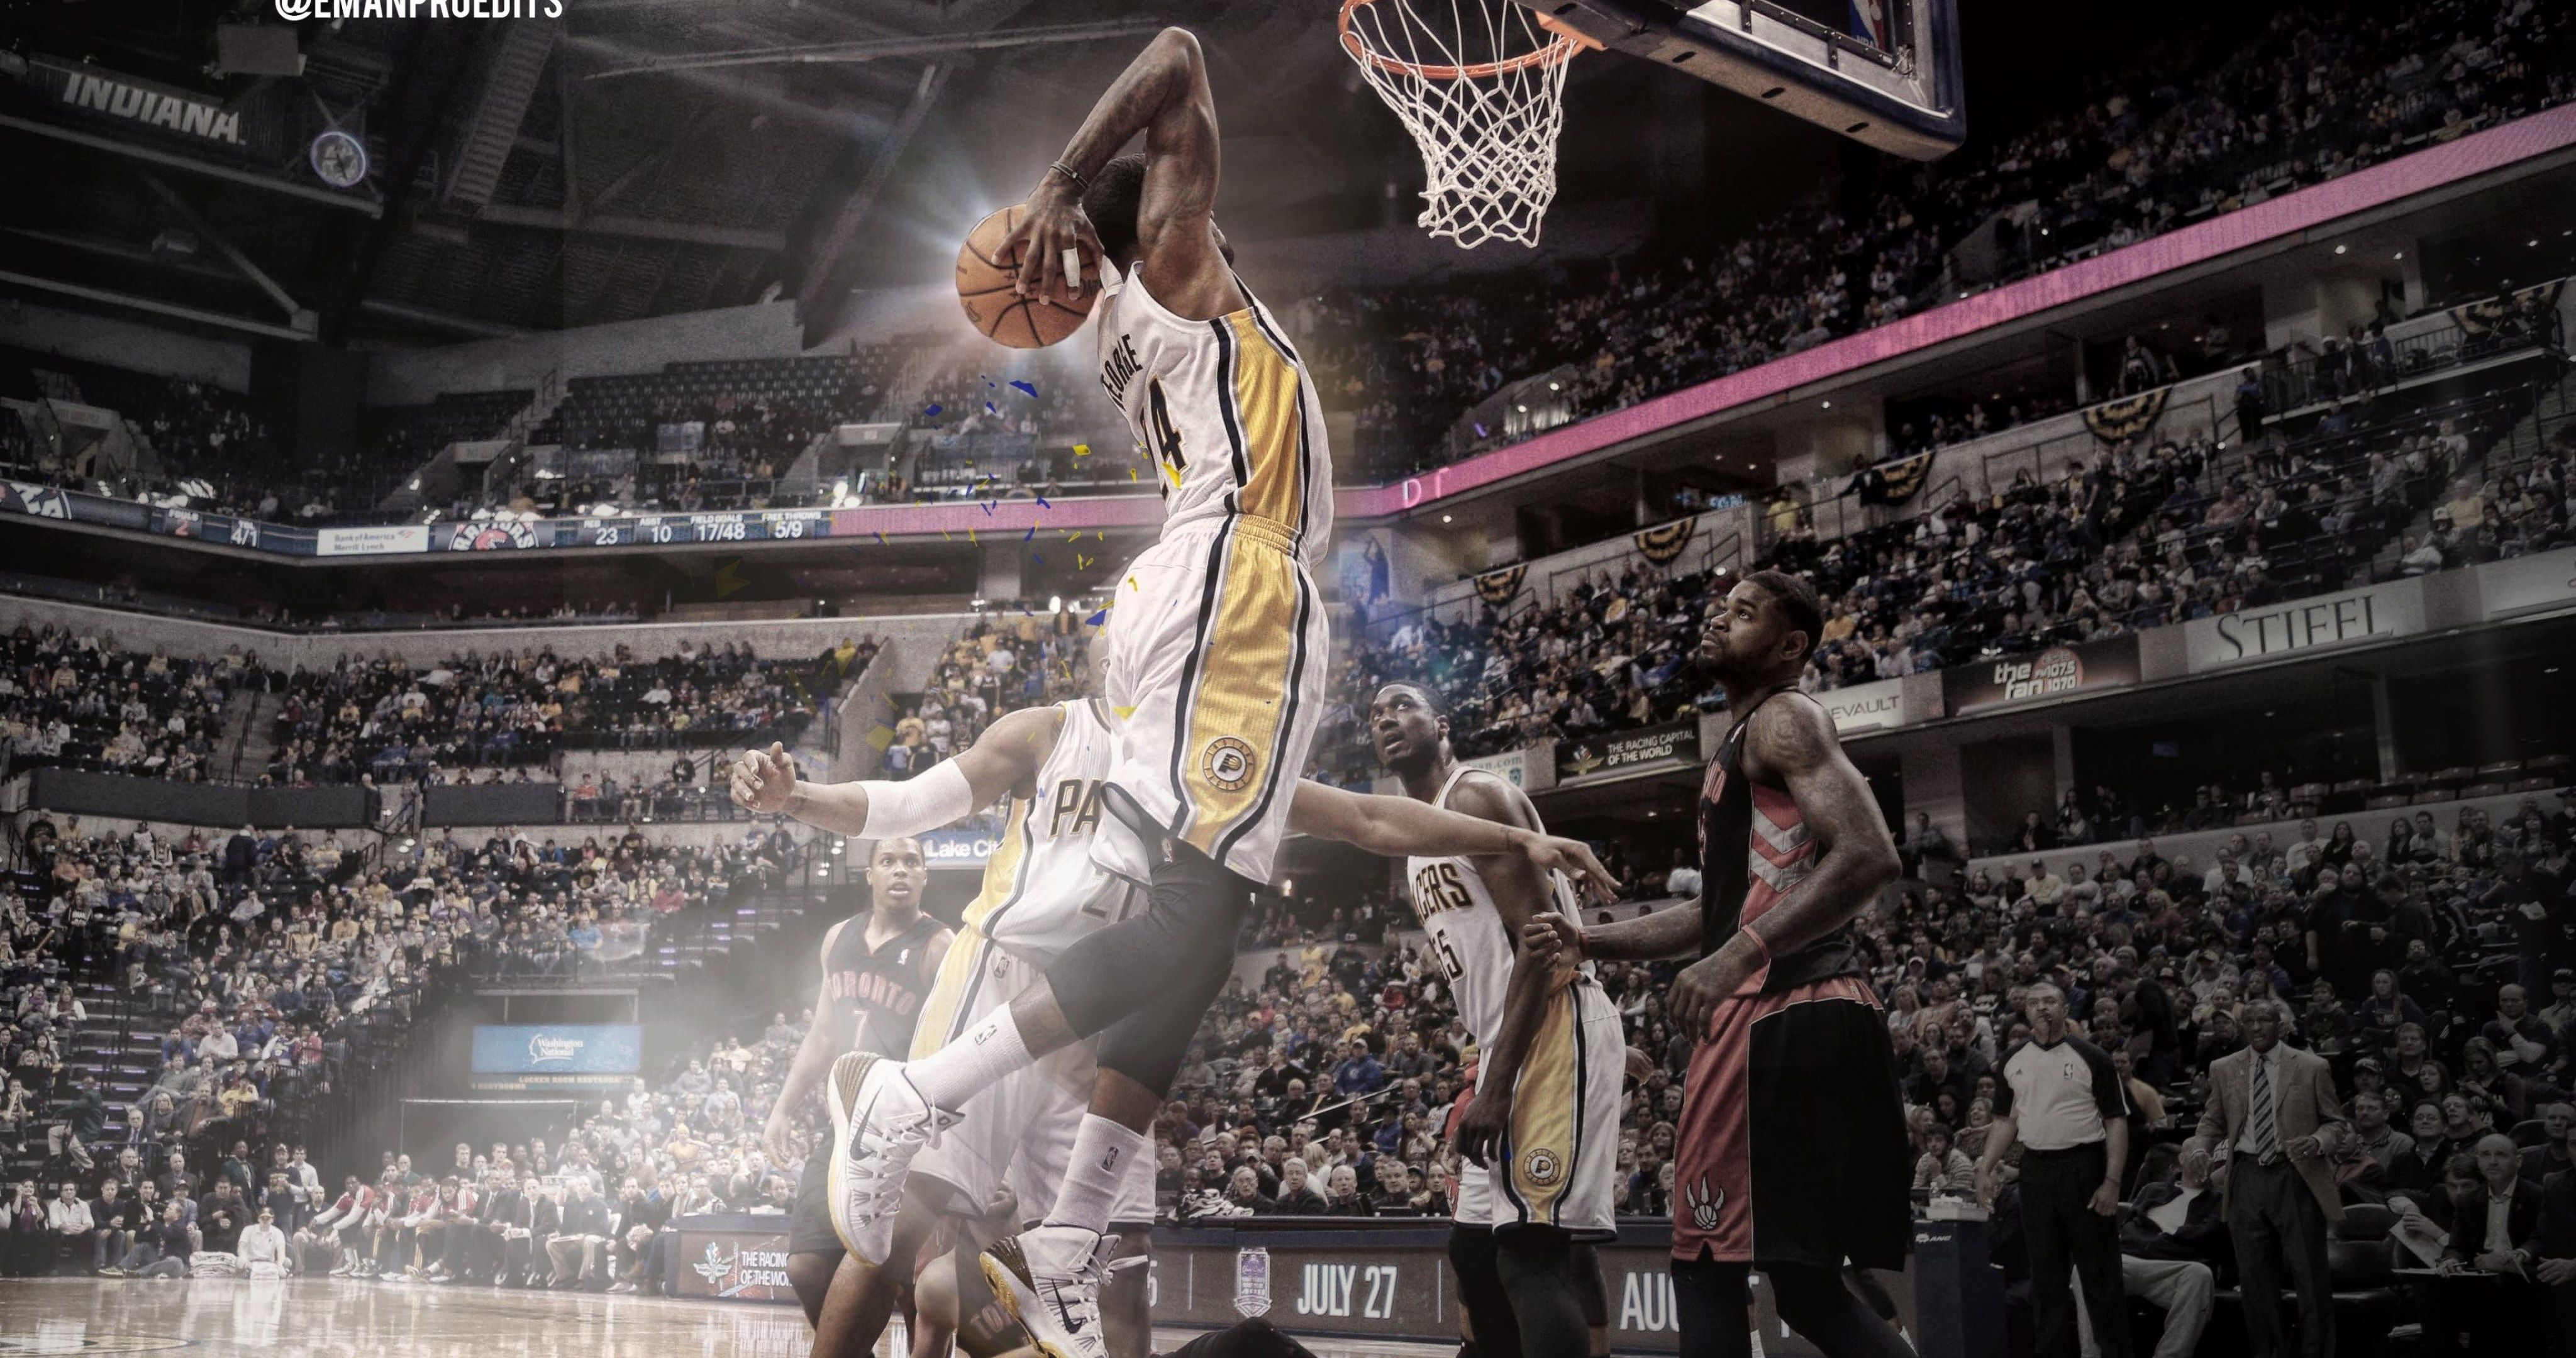 Basketball player paul george 4k ultra hd wallpaper sharovarka basketball player paul george 4k ultra hd wallpaper voltagebd Image collections